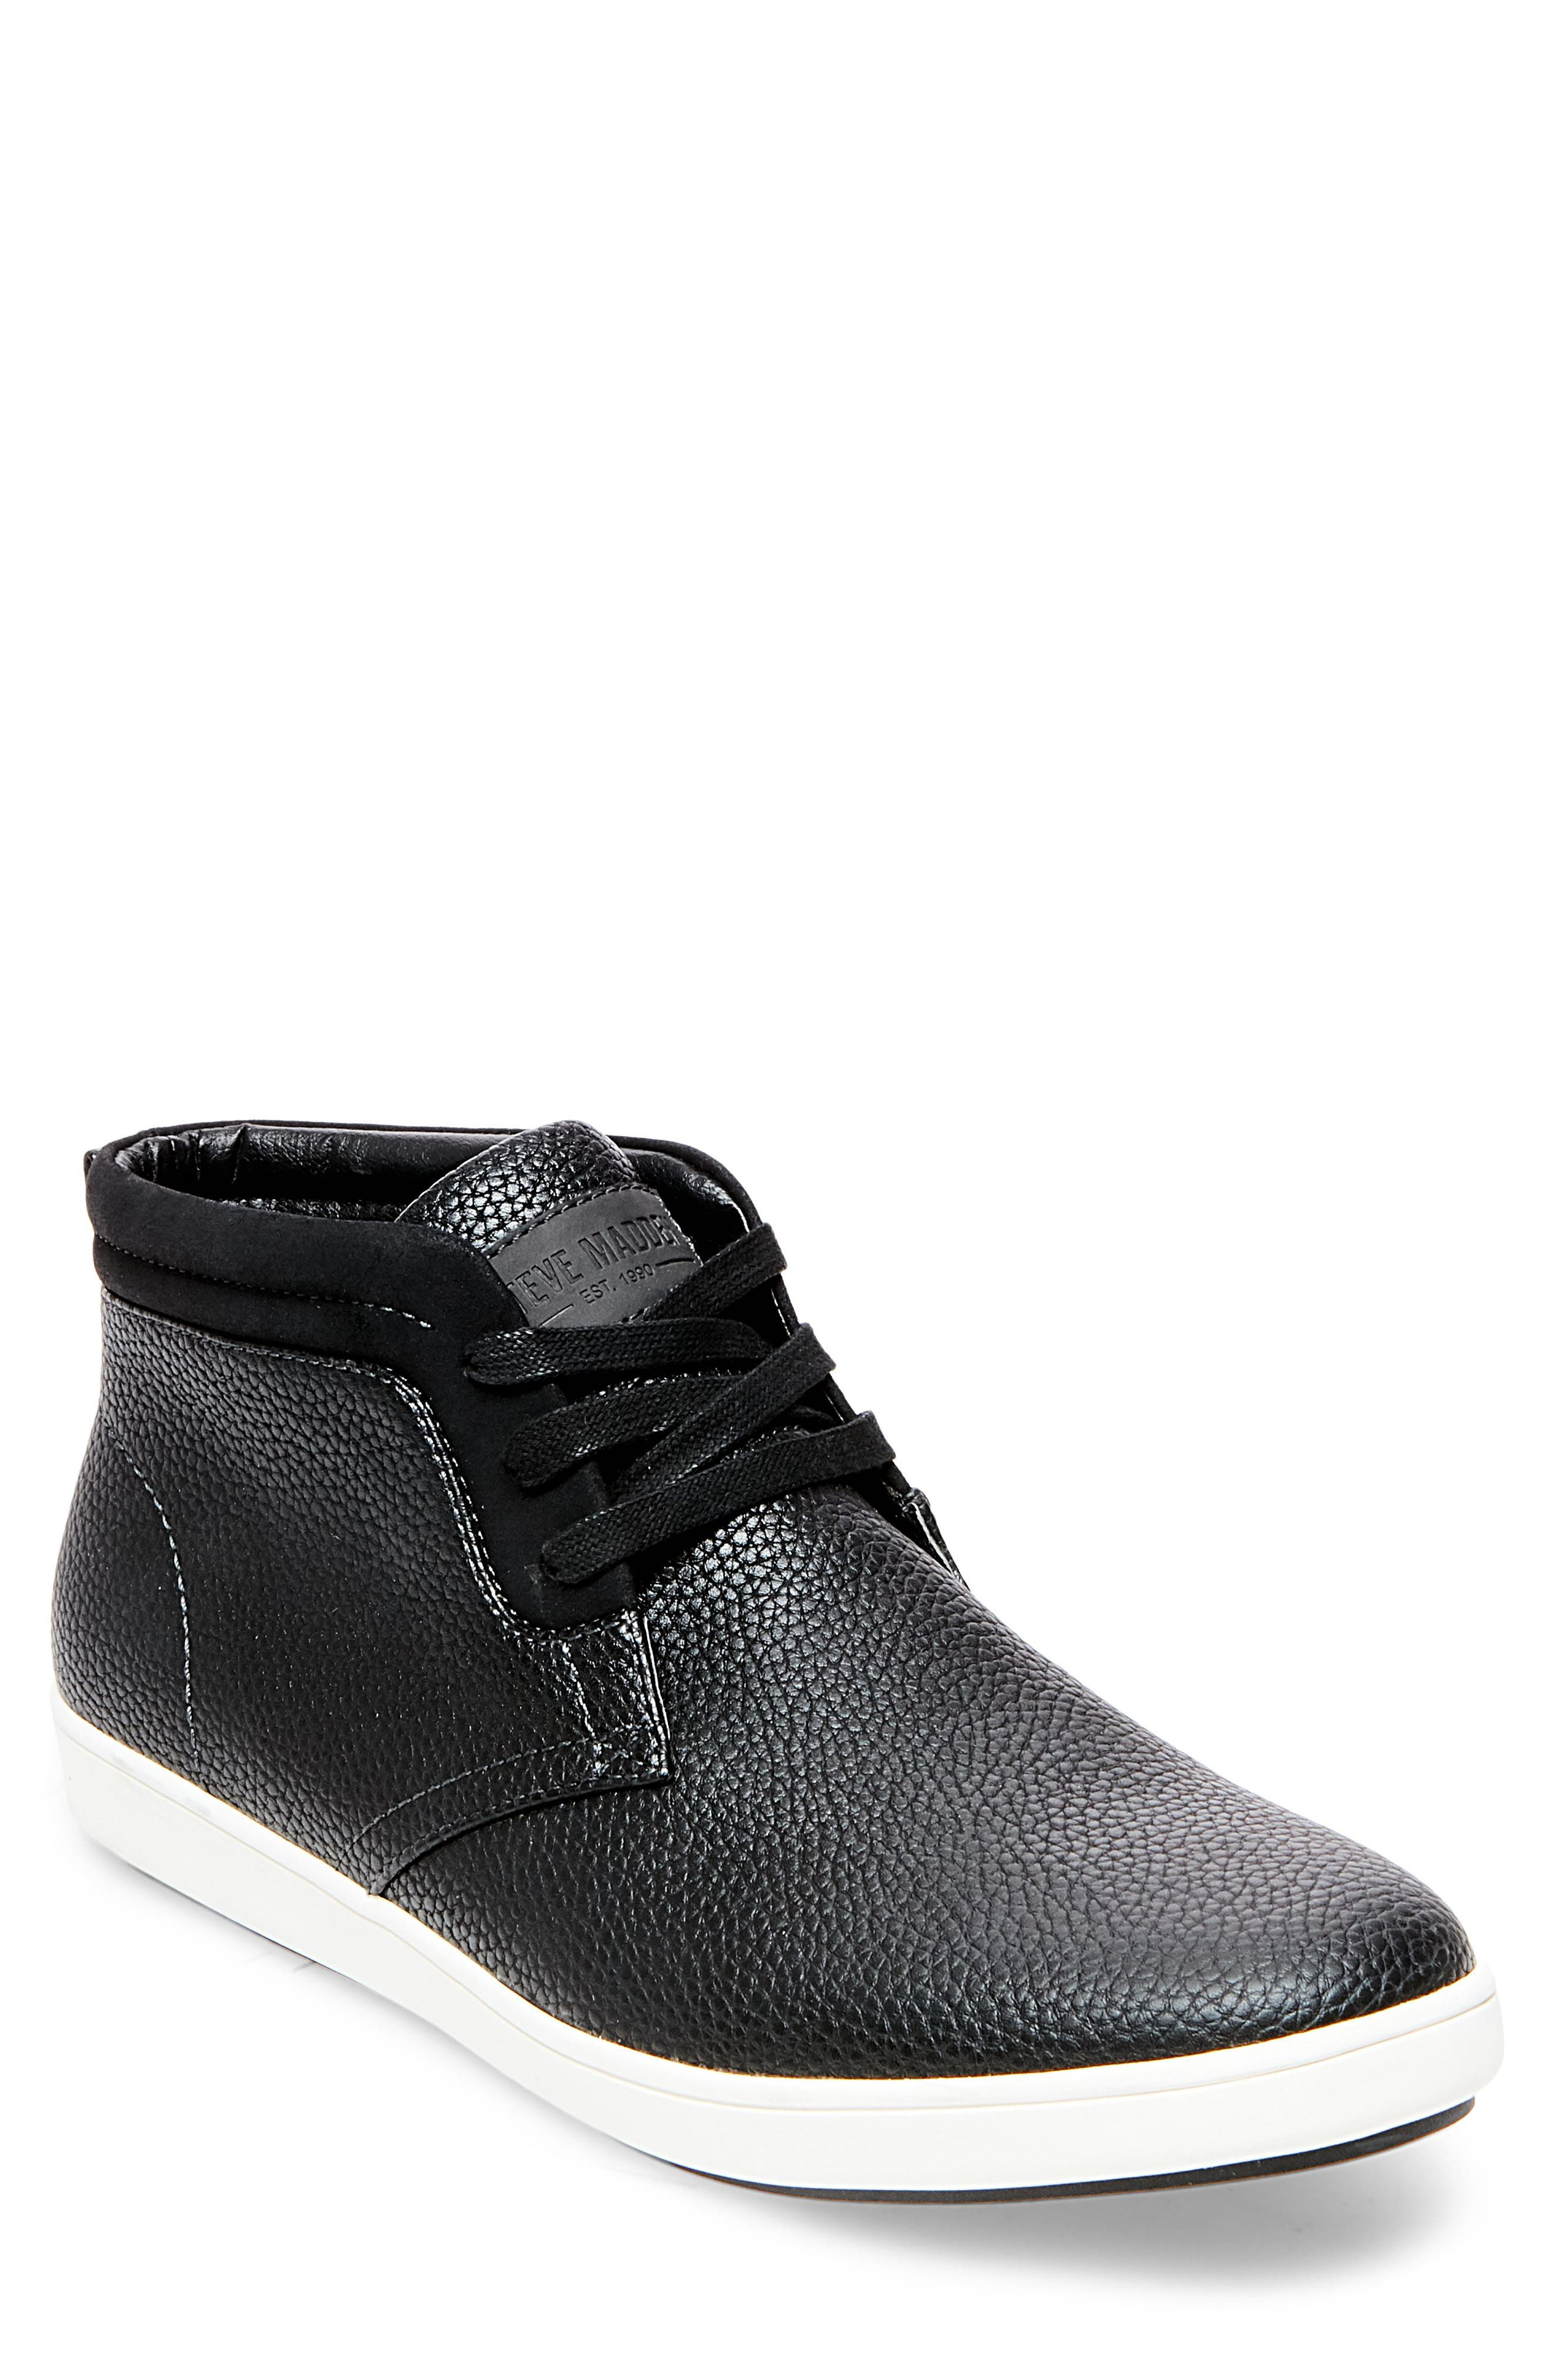 Fenway Sneaker,                         Main,                         color, BLACK LEATHER